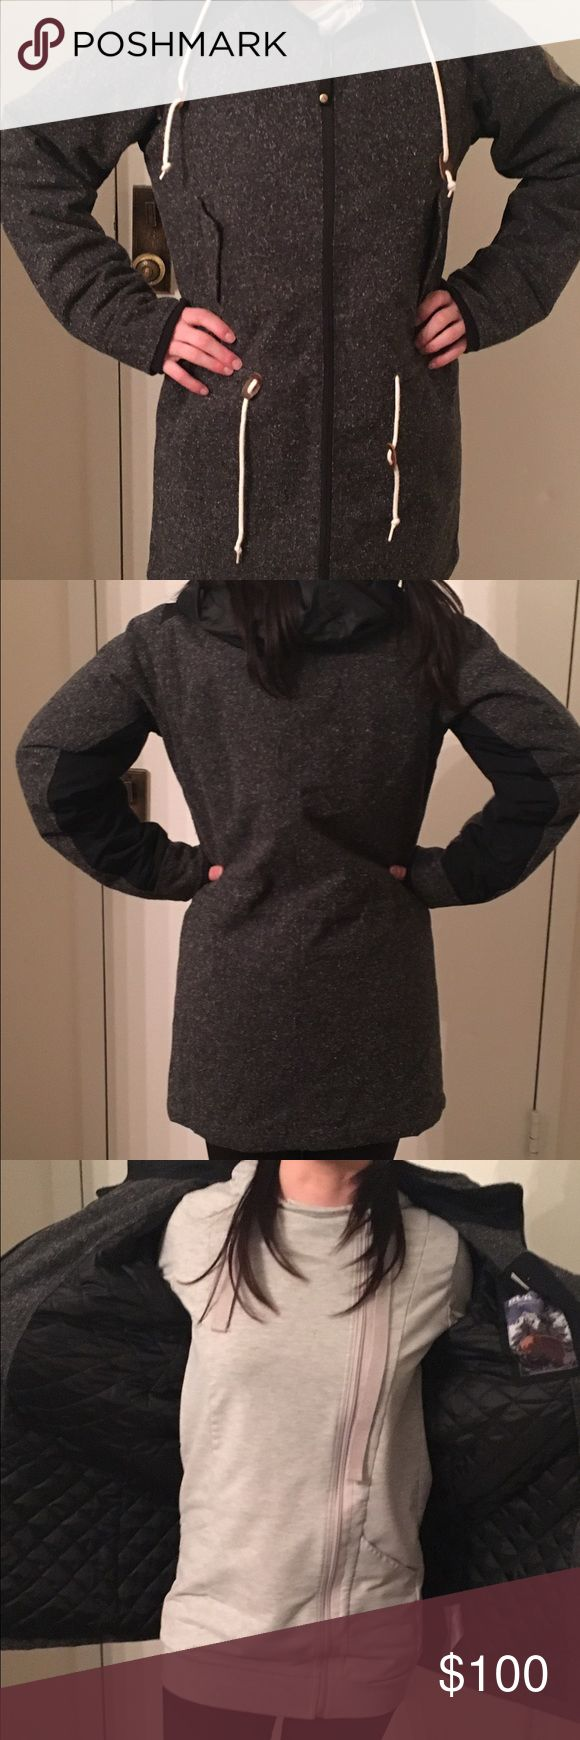 Burton ski jacket This Burton ski jacket is perfect for any snow bunny. It's heather grey fabric is a great color for winter. It is lightly worn. If you have any questions please let me know. Reasonable offers will be considered. Burton Jackets & Coats Utility Jackets